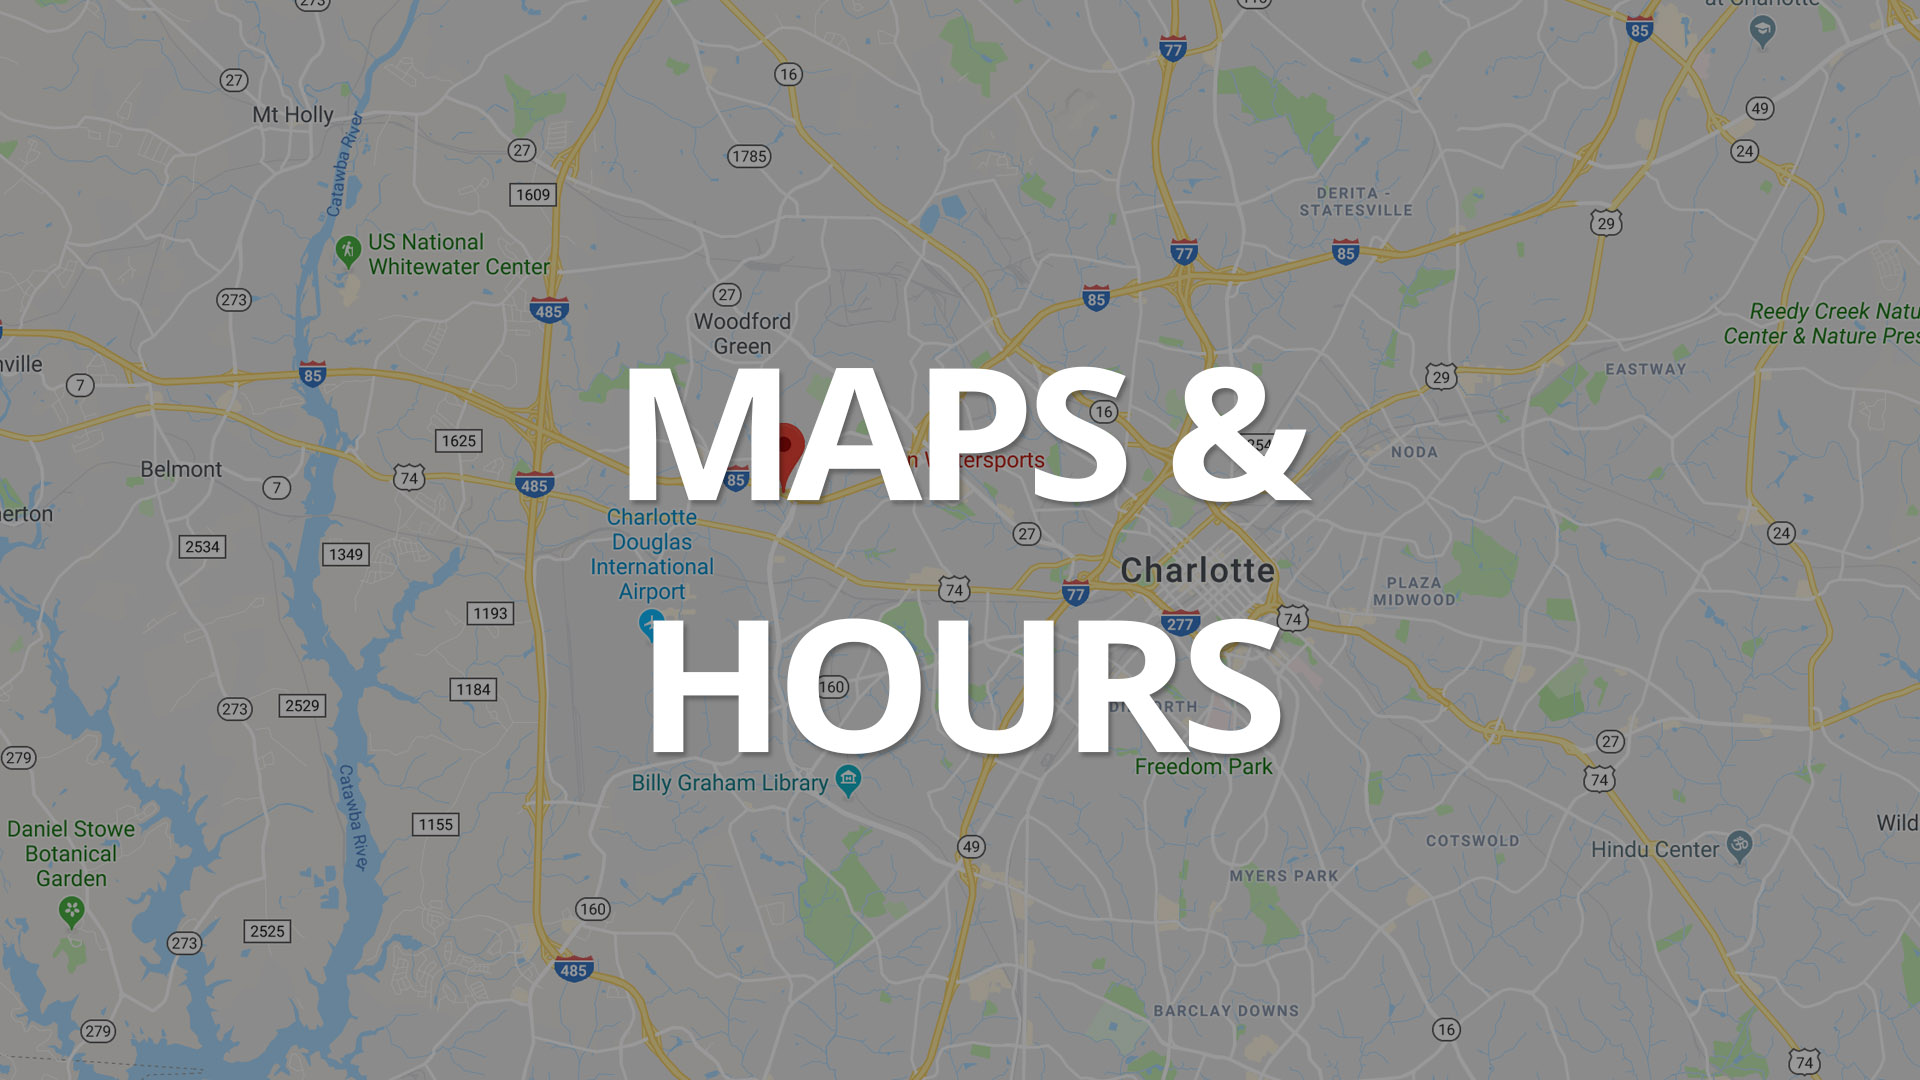 SouthTown Watersports Augusta, GA - Map, Hours, and Location